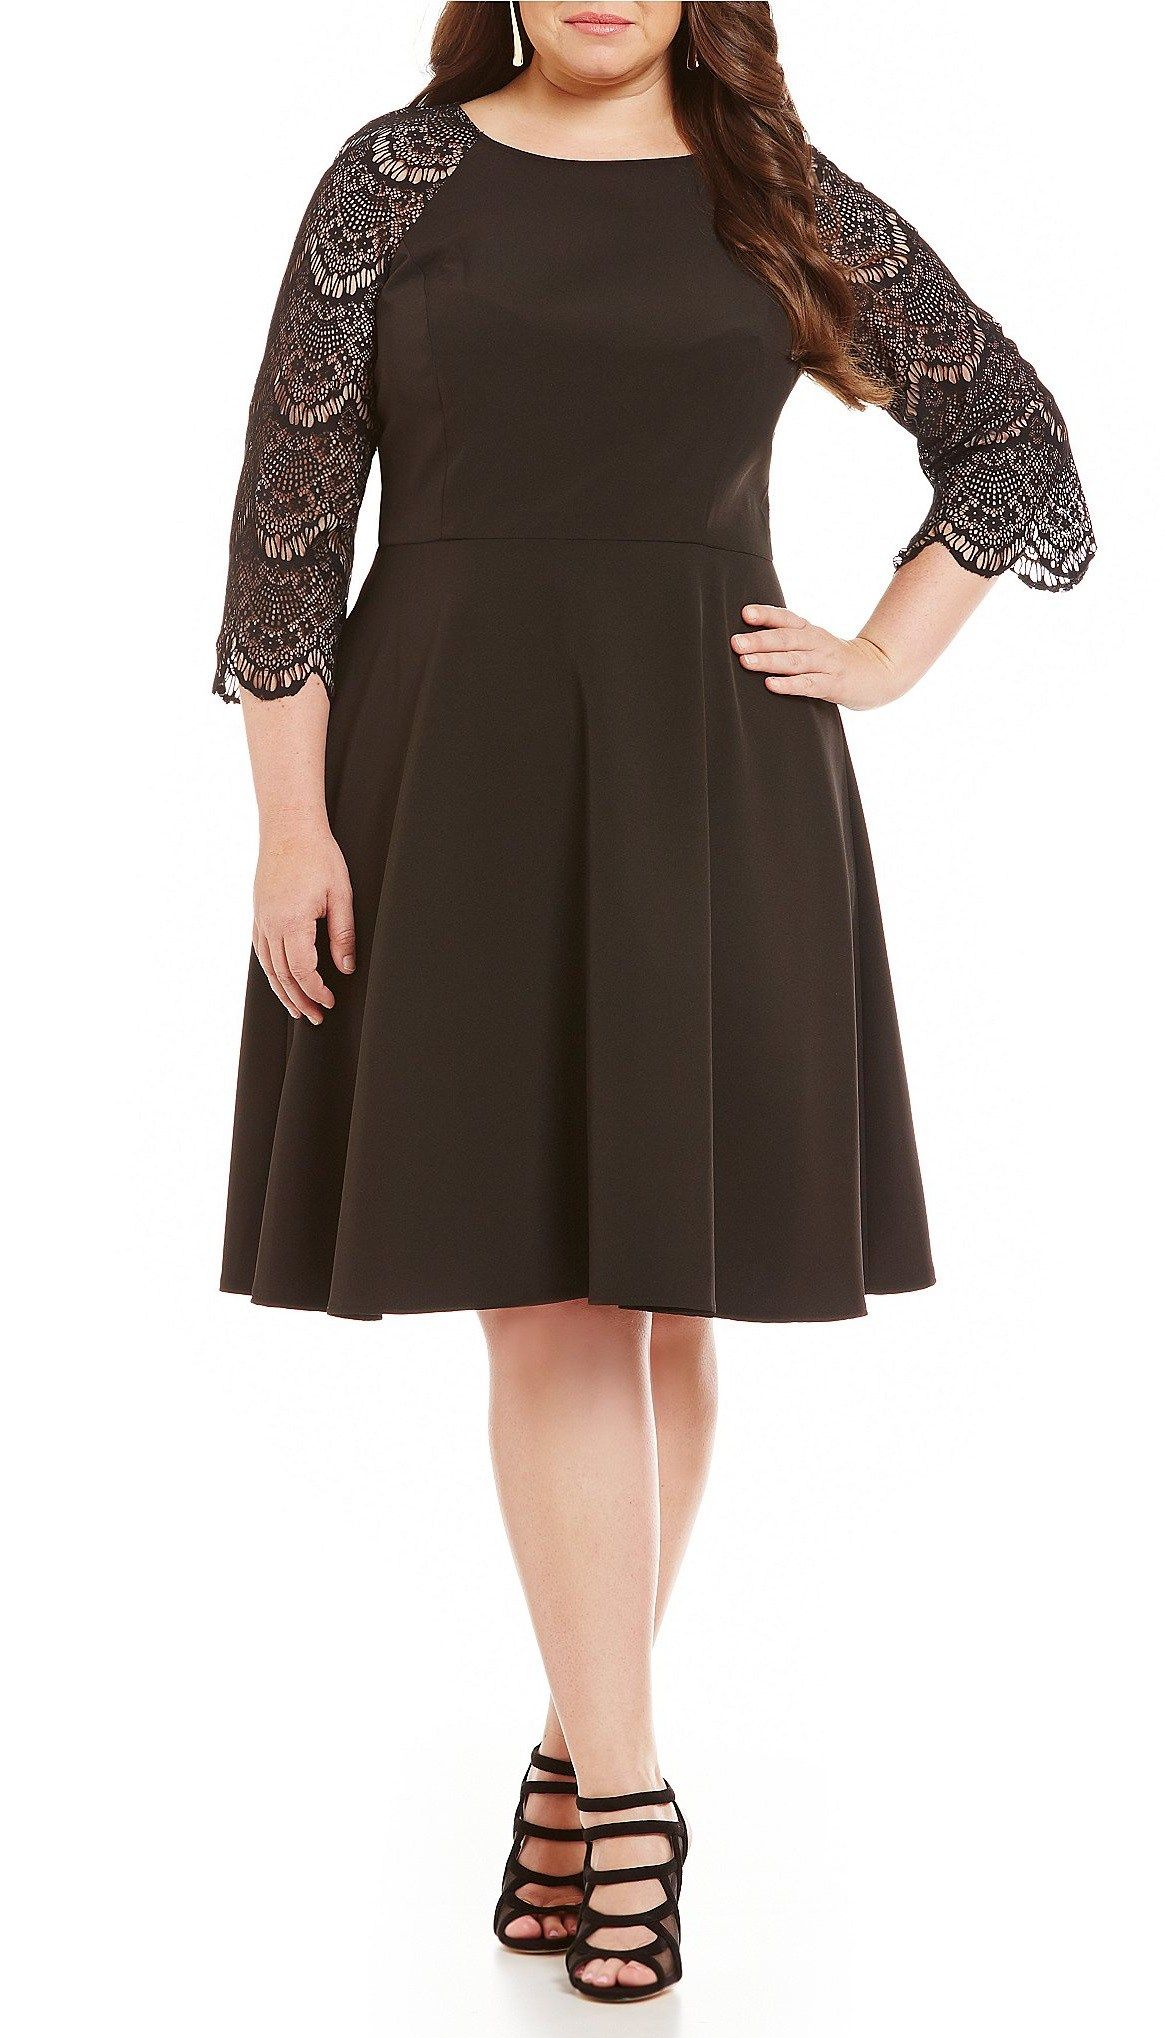 18 Plus Size Black Dresses With Sleeves Black Fashion And Clothes